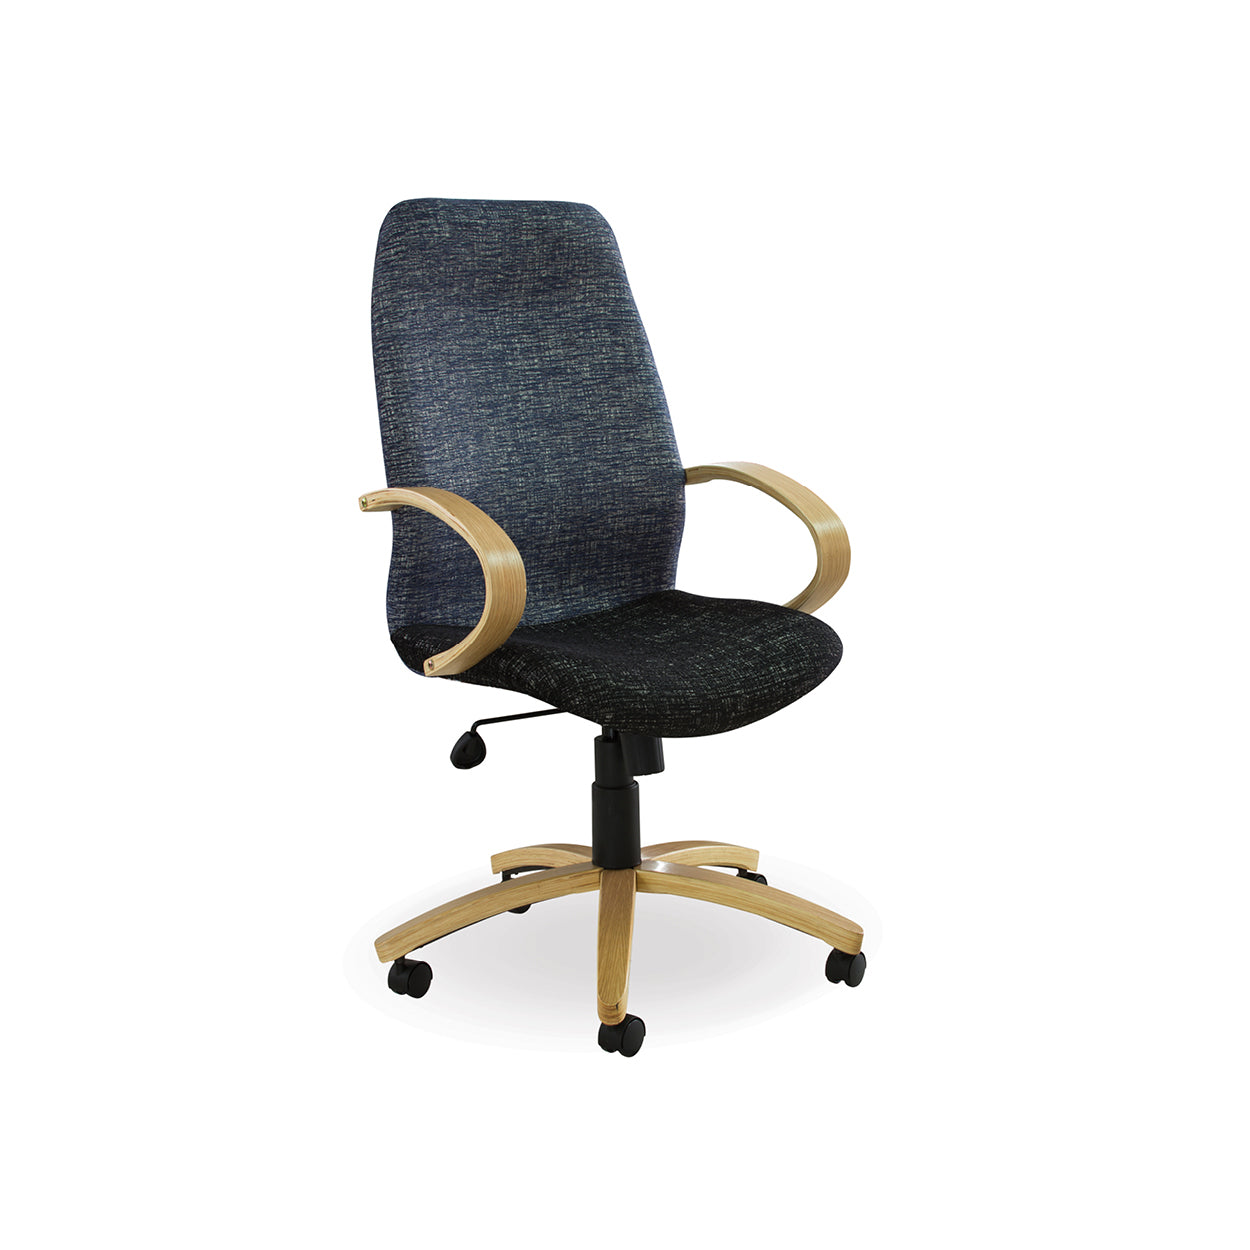 Hedcor Morant Wood High Back office chair